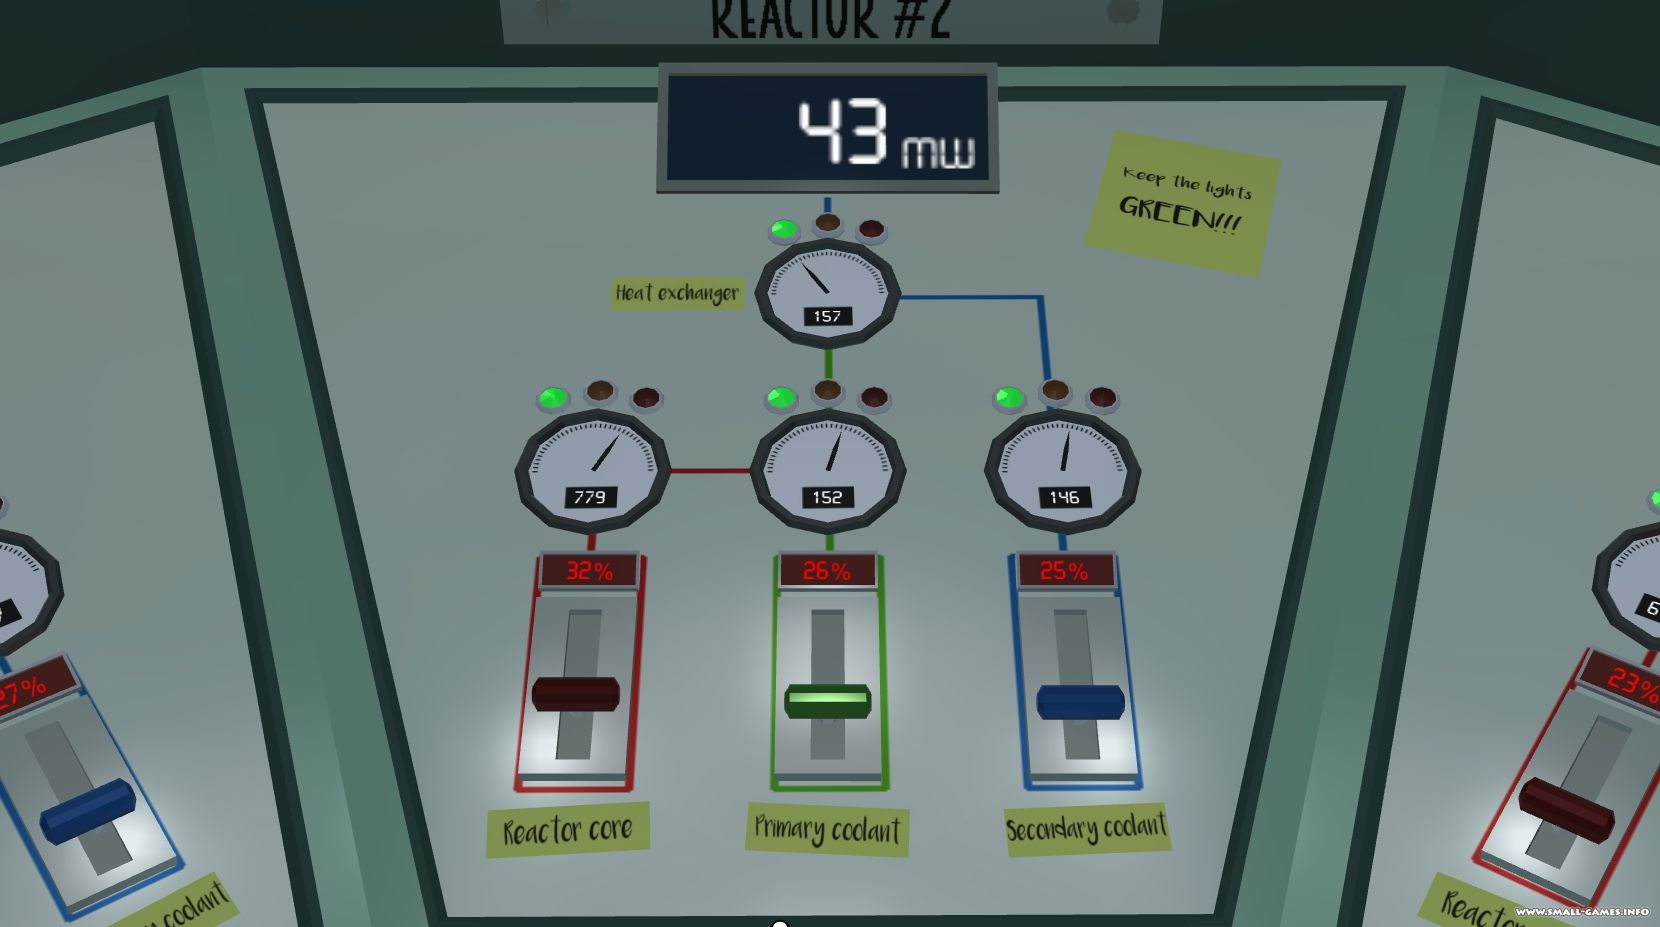 Nuclear power plant simulator by devour.